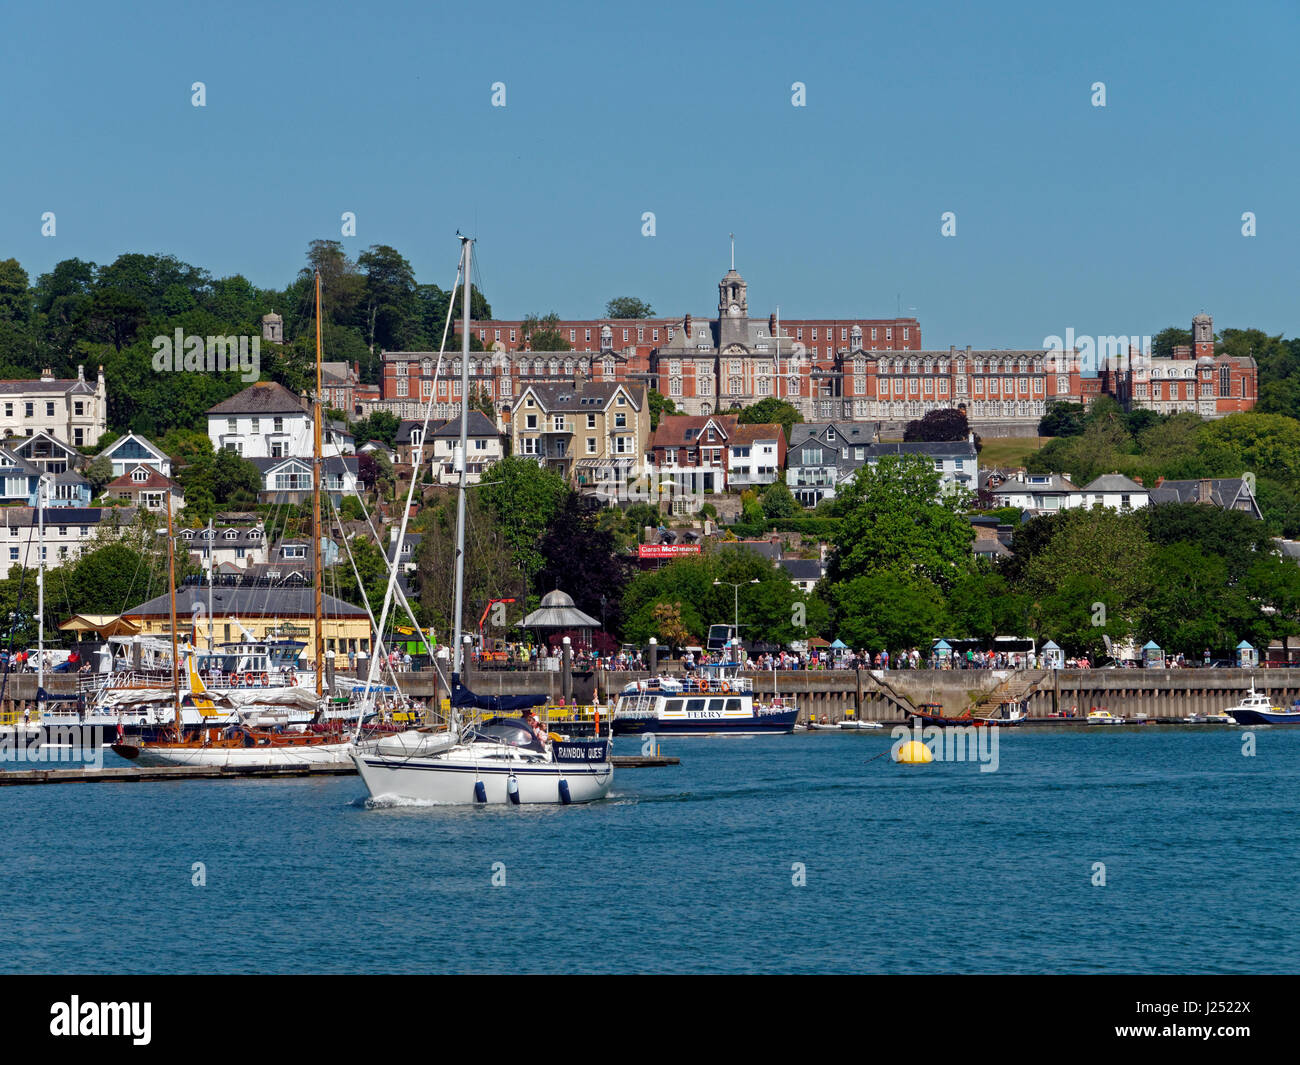 The busy River Dart with Dartmouth and its Naval College beyond, viewed from Kingswear, Devon, England, UK Stock Photo